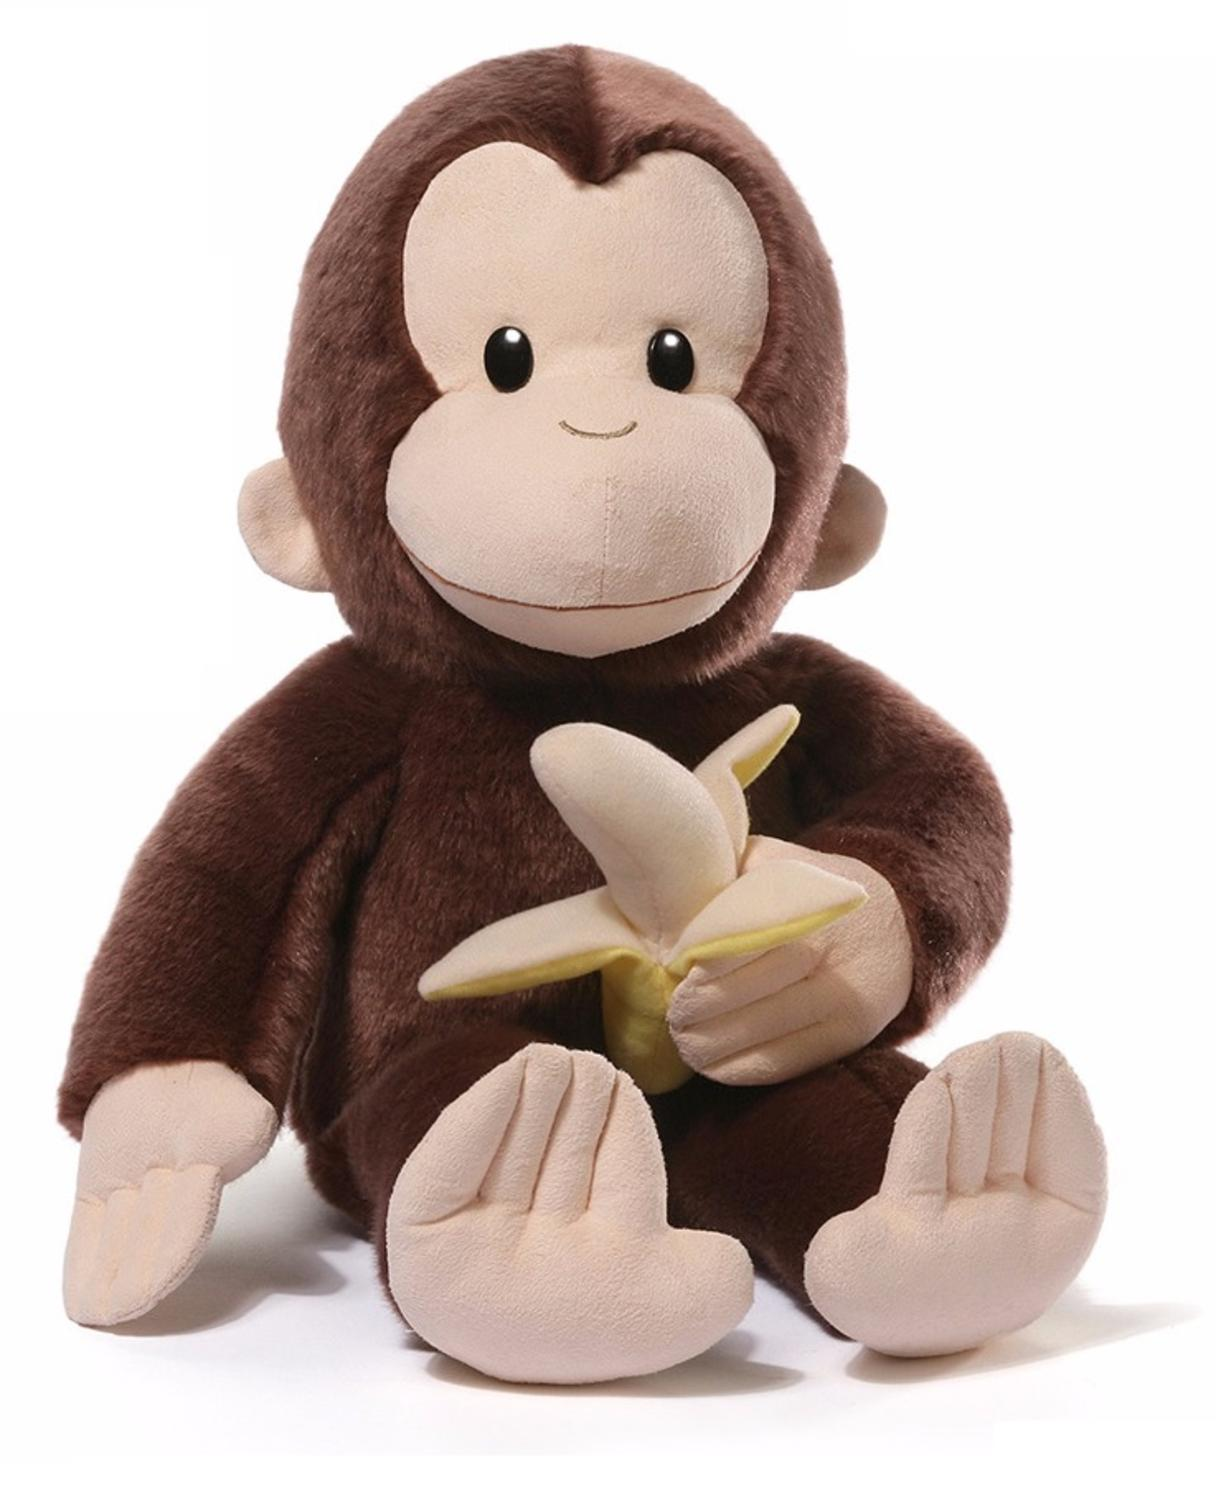 18.5� Soft Plush 75th Anniversary Curious George Stuffed Animal Toy by Gund